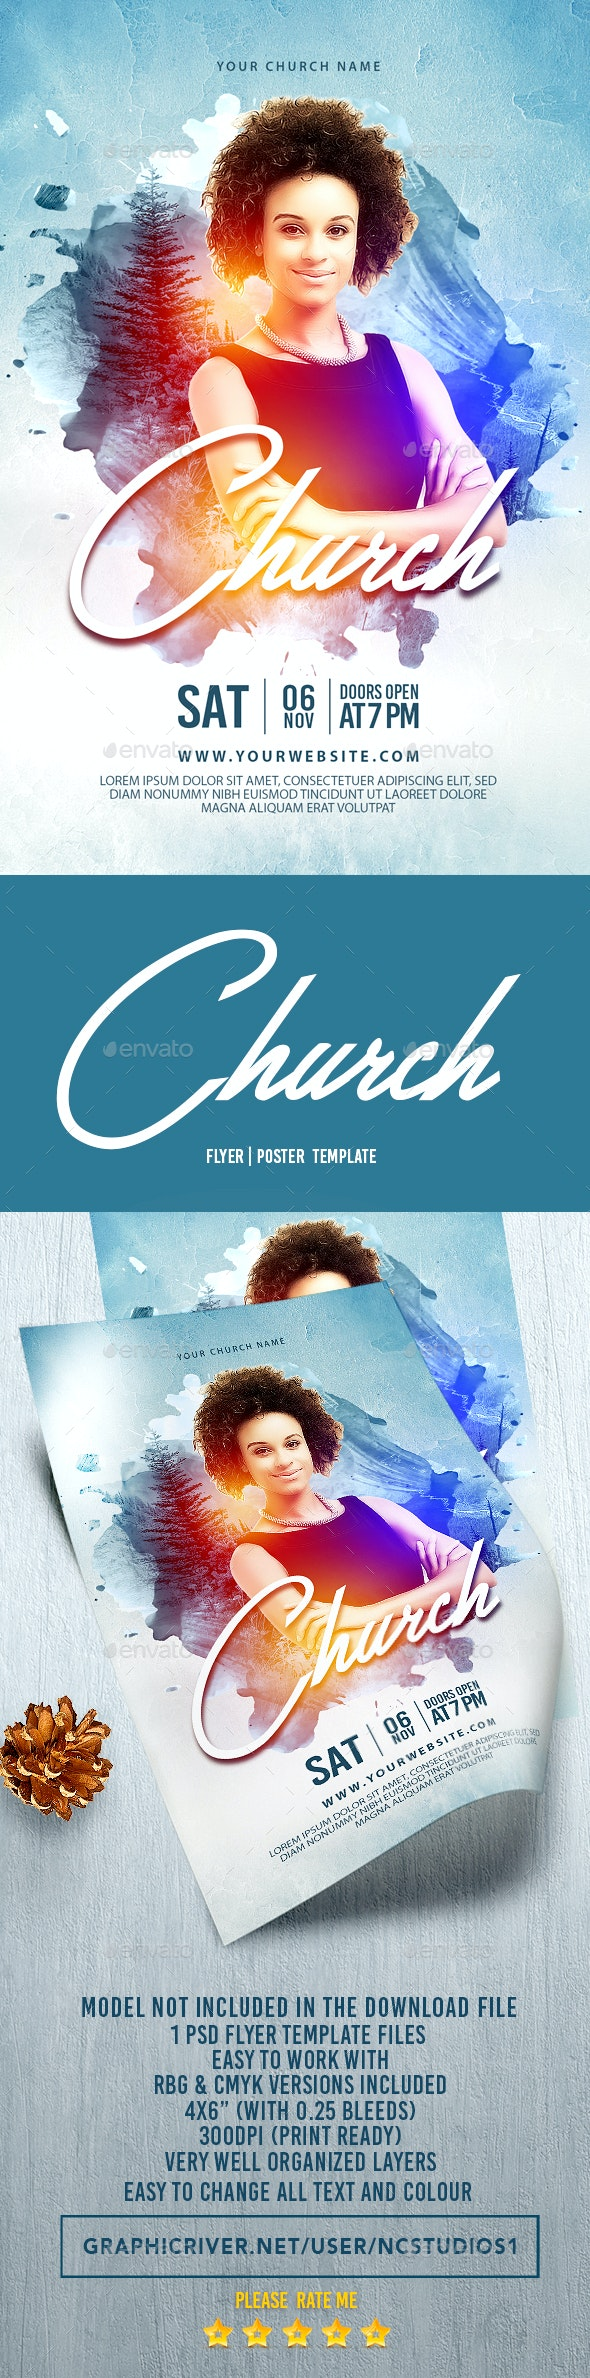 Church Flyer Template - Events Flyers